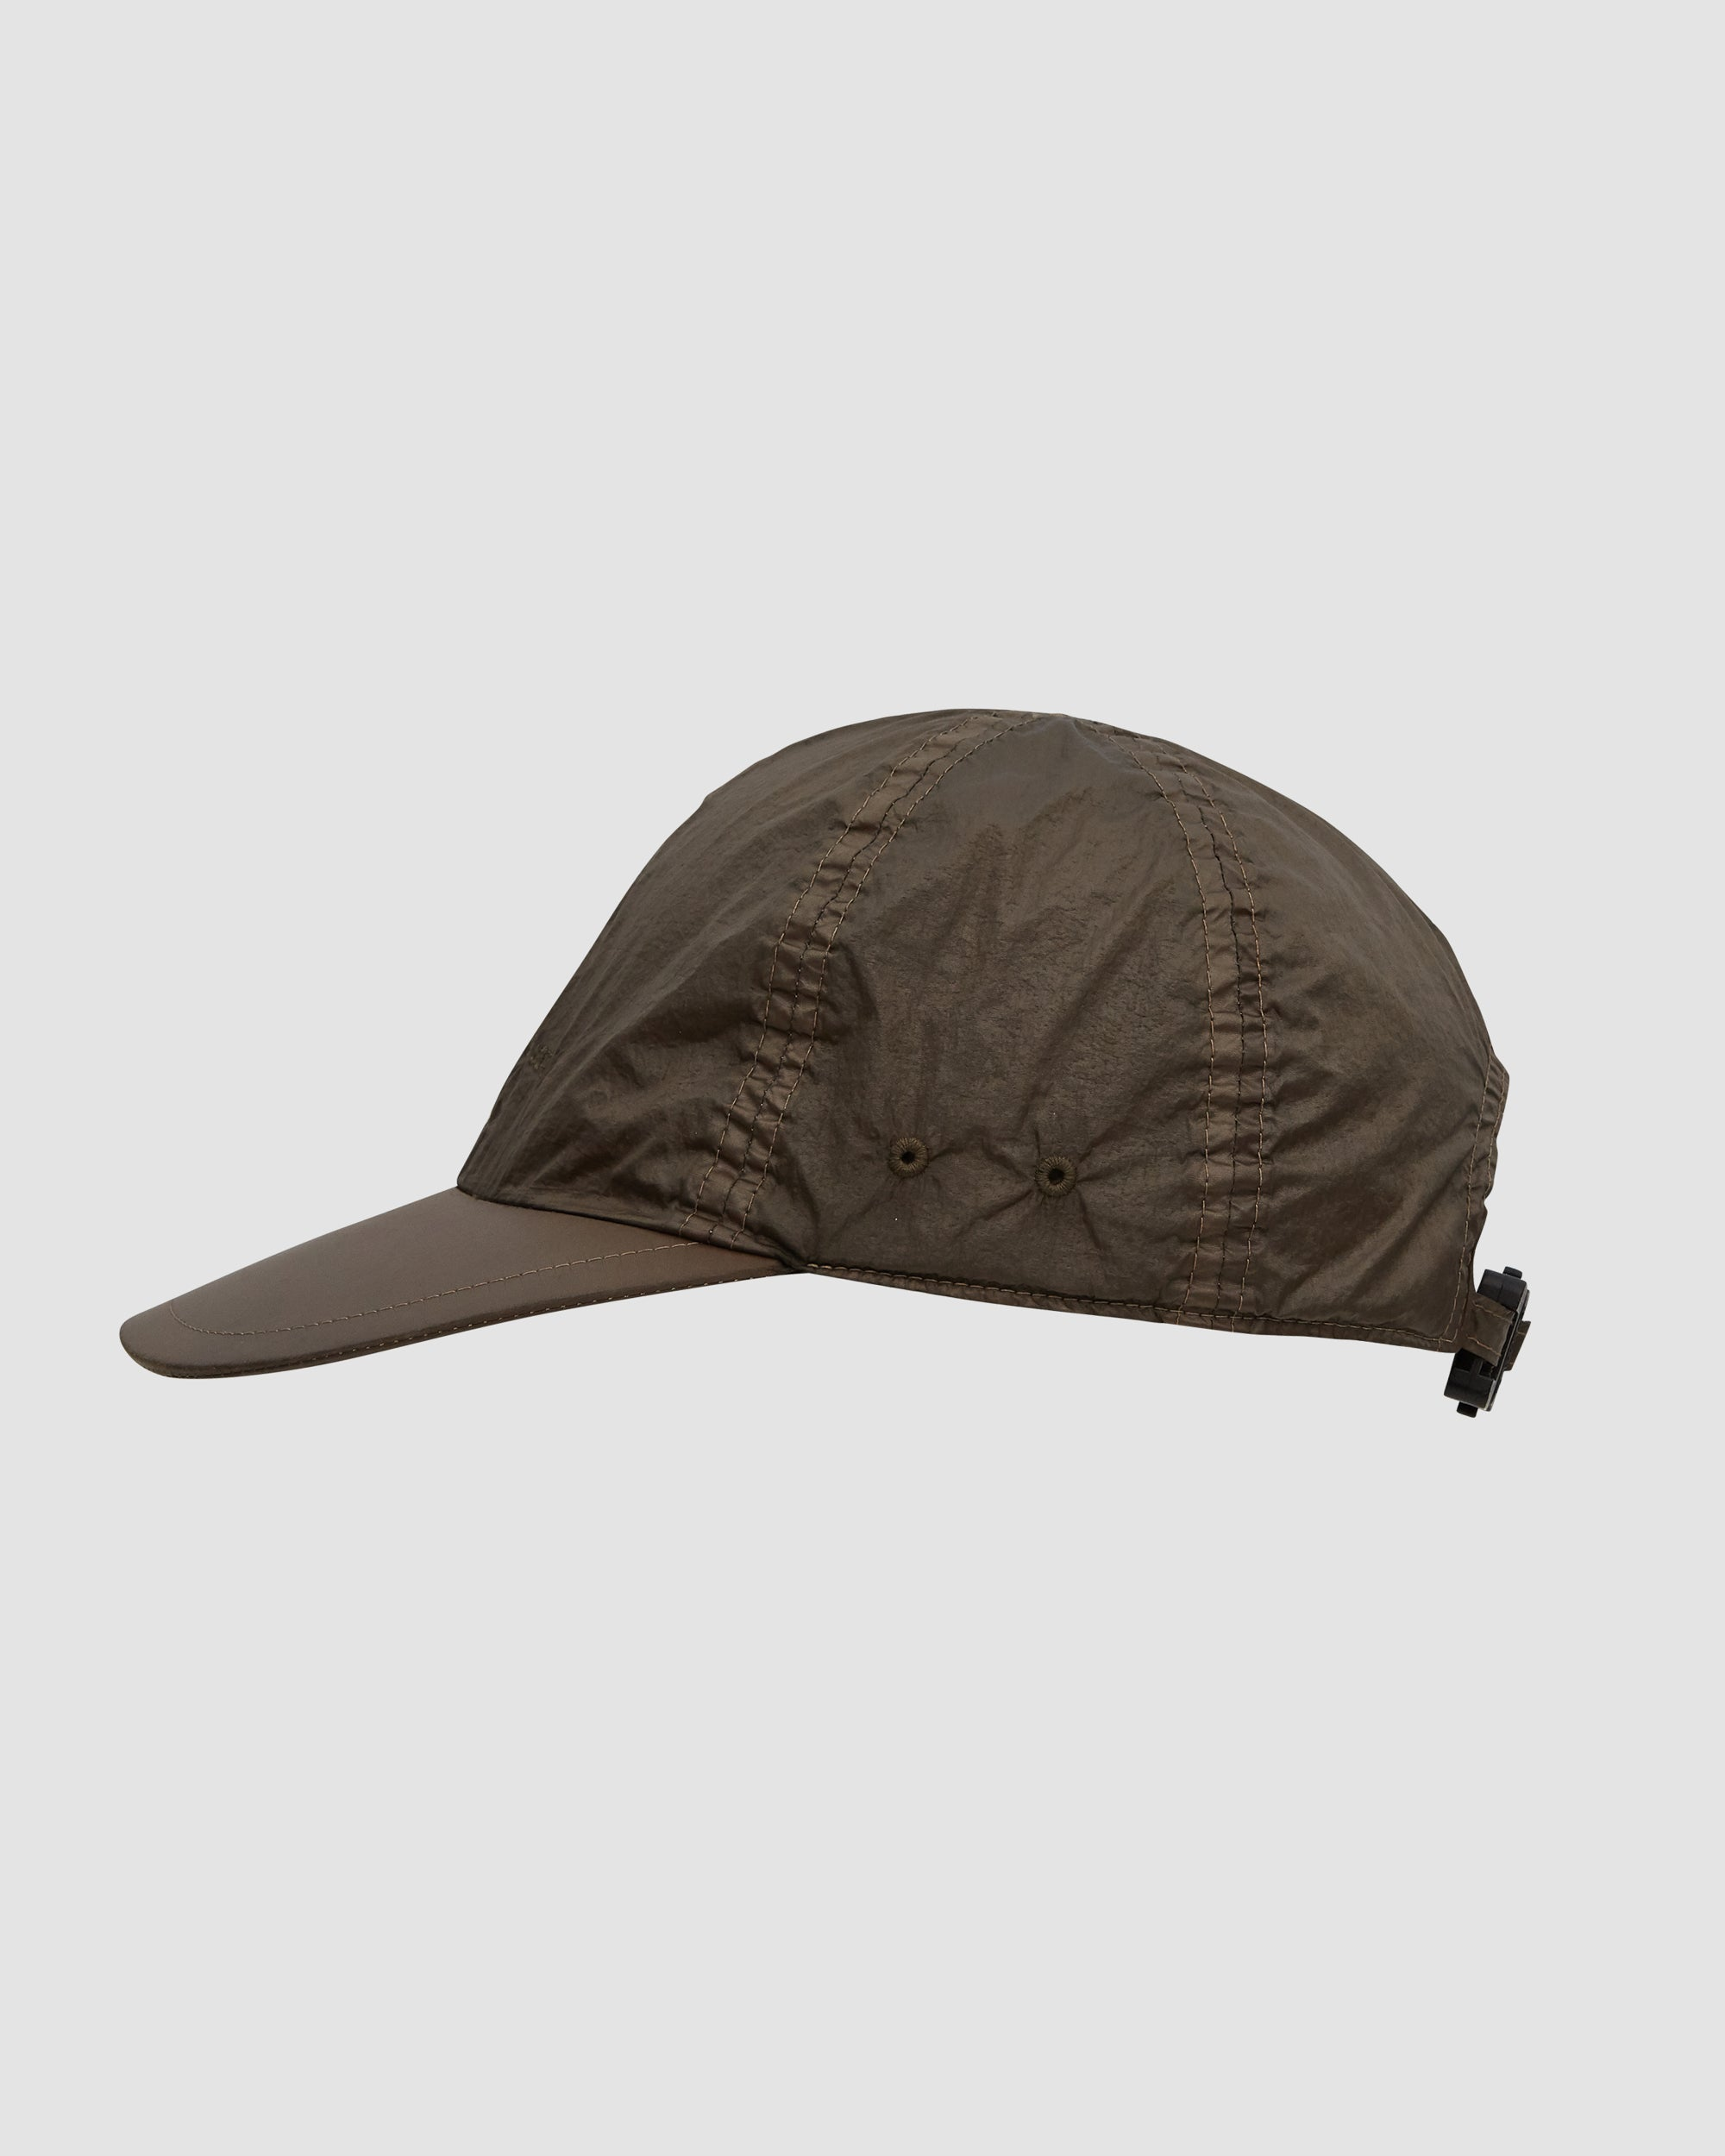 1017 ALYX 9SM | LOGO HAT W NYLON BUCKLE | Hat | Accessories, DARK BROWN, Google Shopping, Hat, HATS, Man, S20, S20 Drop II, UNISEX, Woman